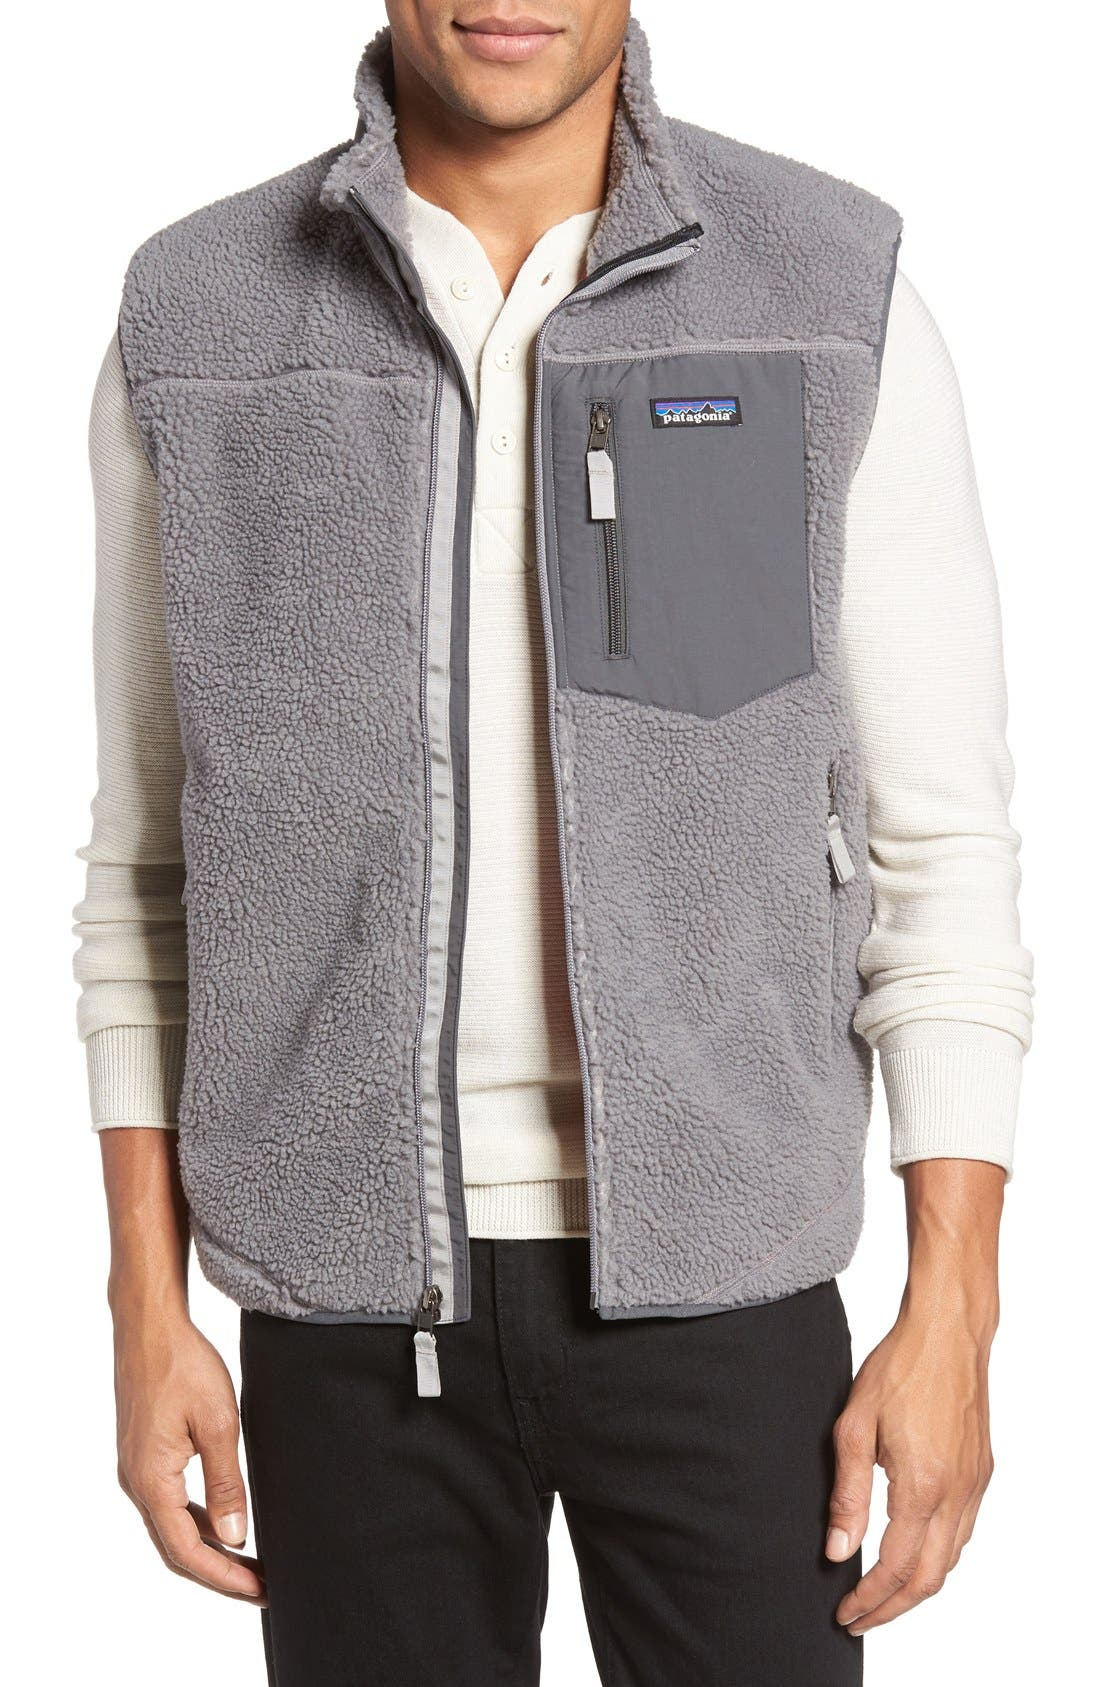 Classic Retro-X<sup>®</sup> Waterproof Vest,                             Main thumbnail 1, color,                             Feather Grey